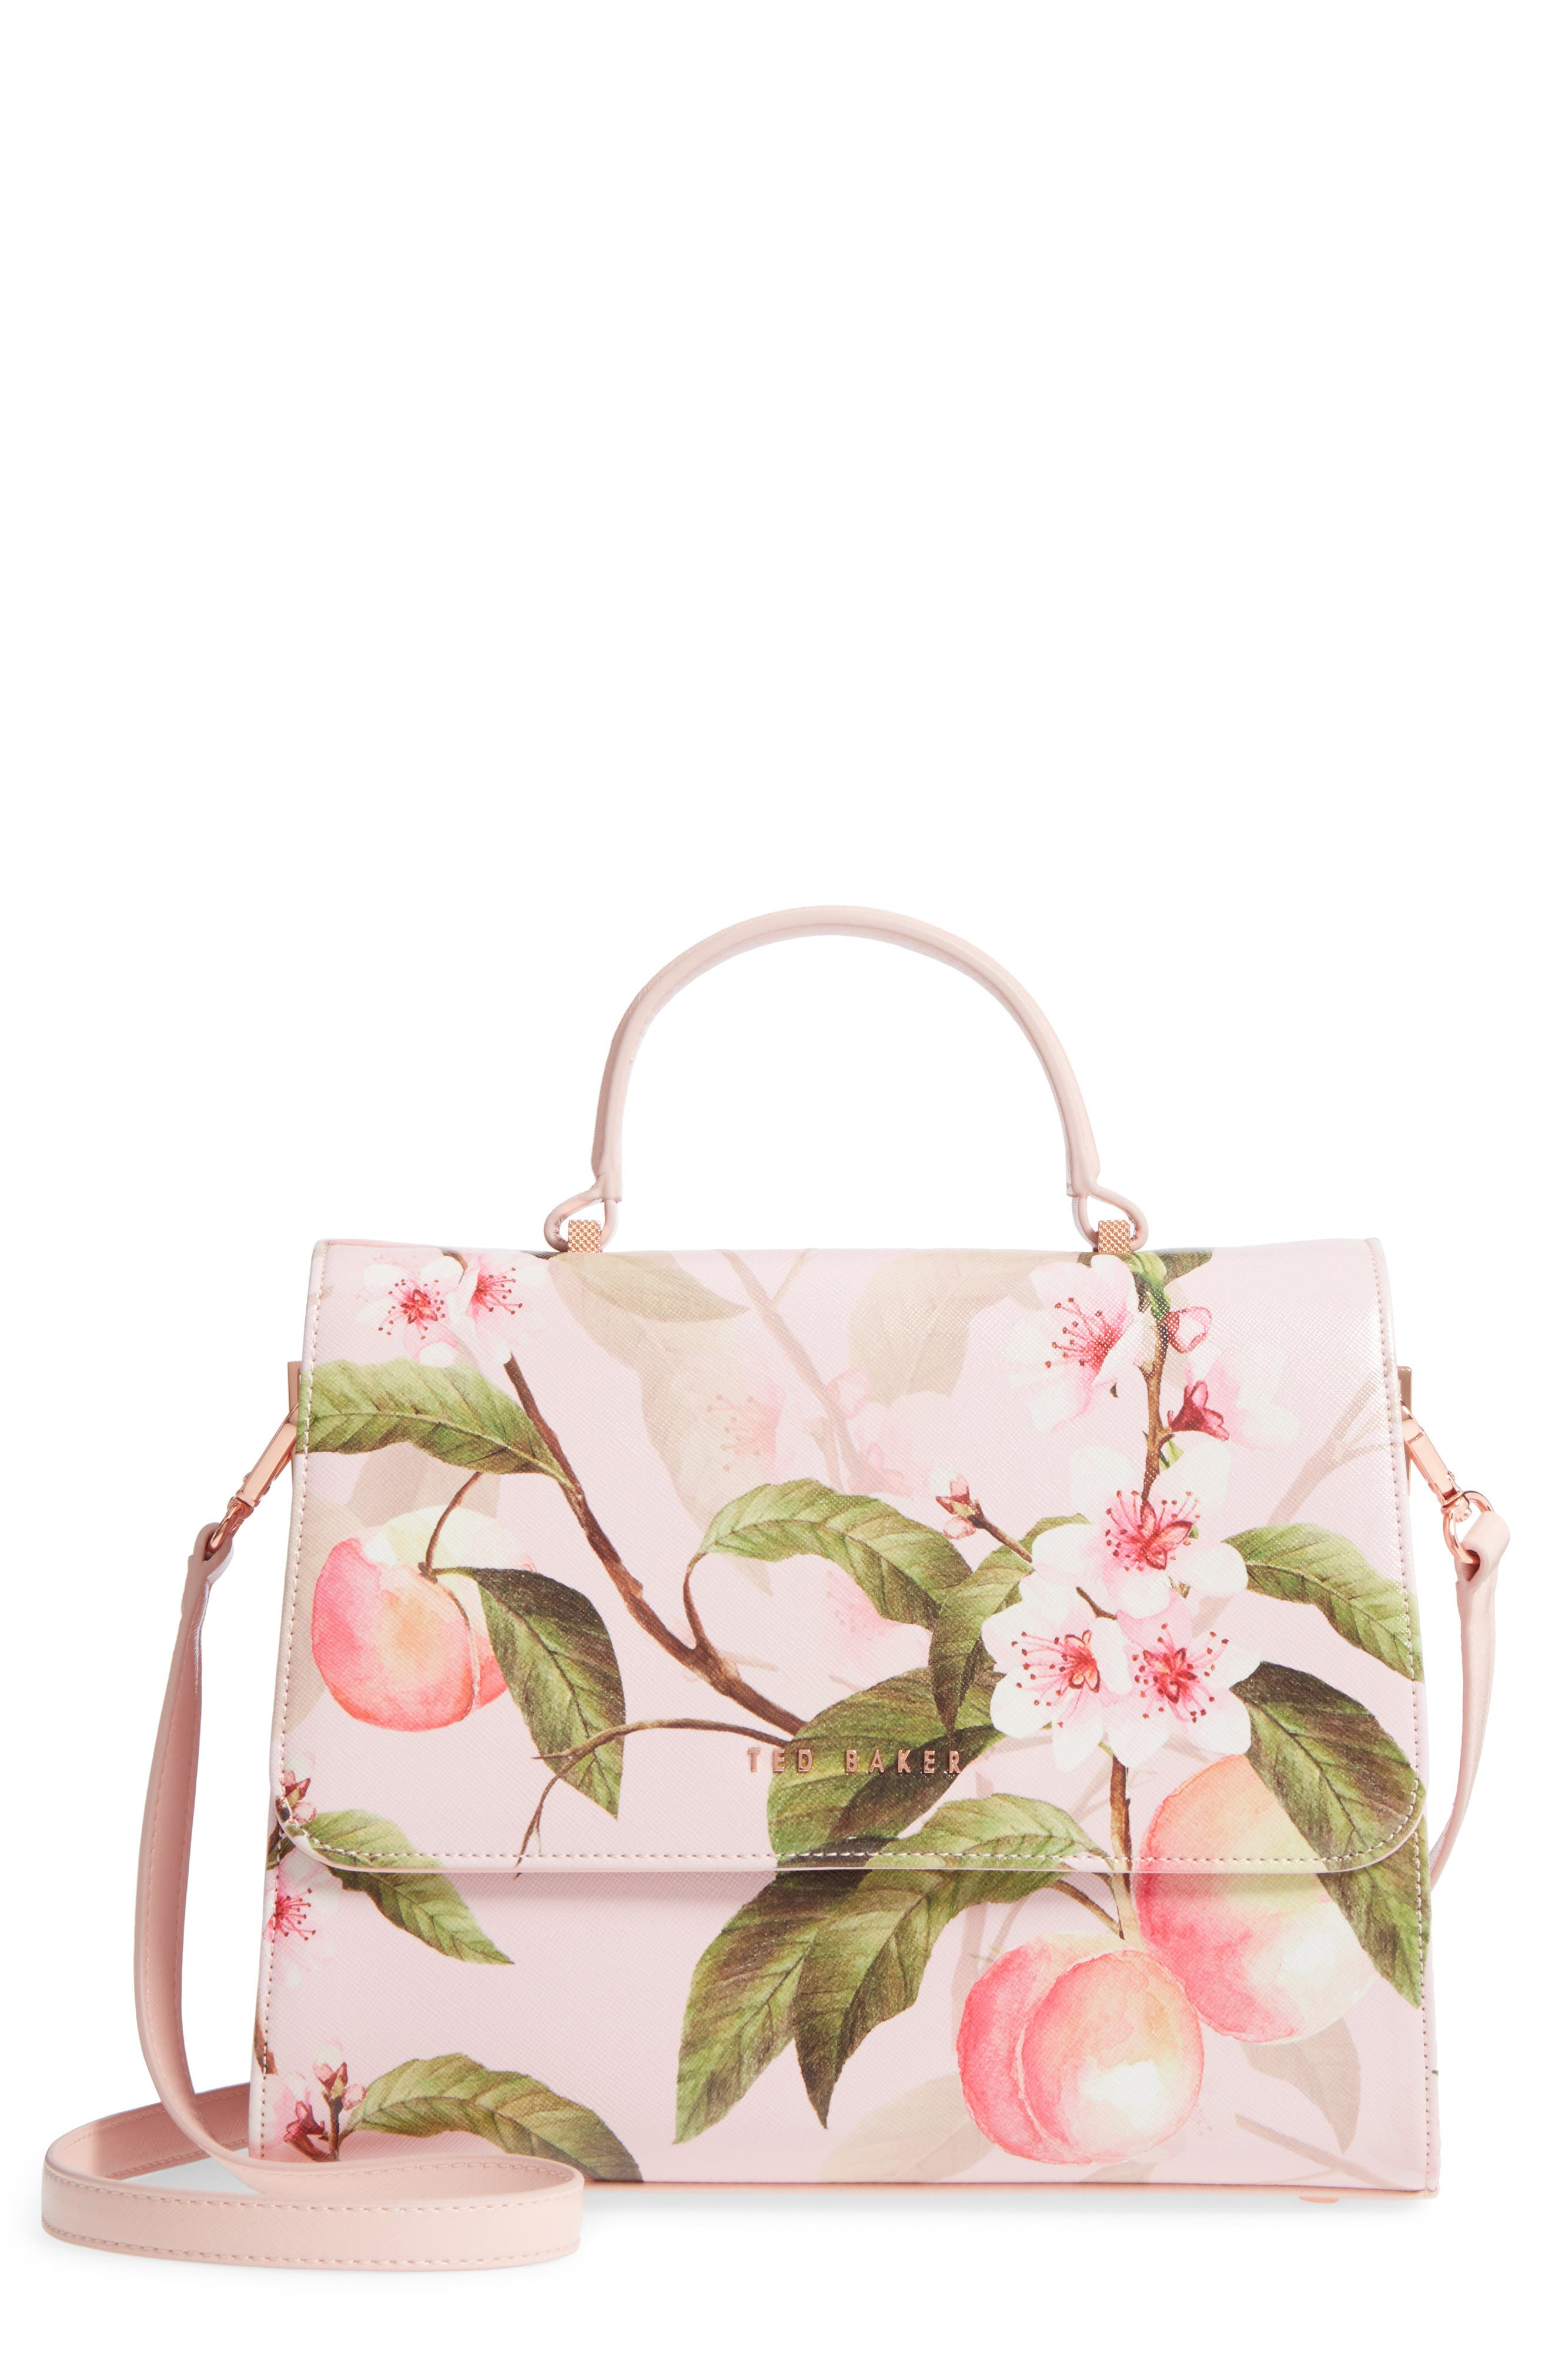 Alternate Image 1 Selected - Ted Baker London Dipelta Peach Faux Leather Satchel